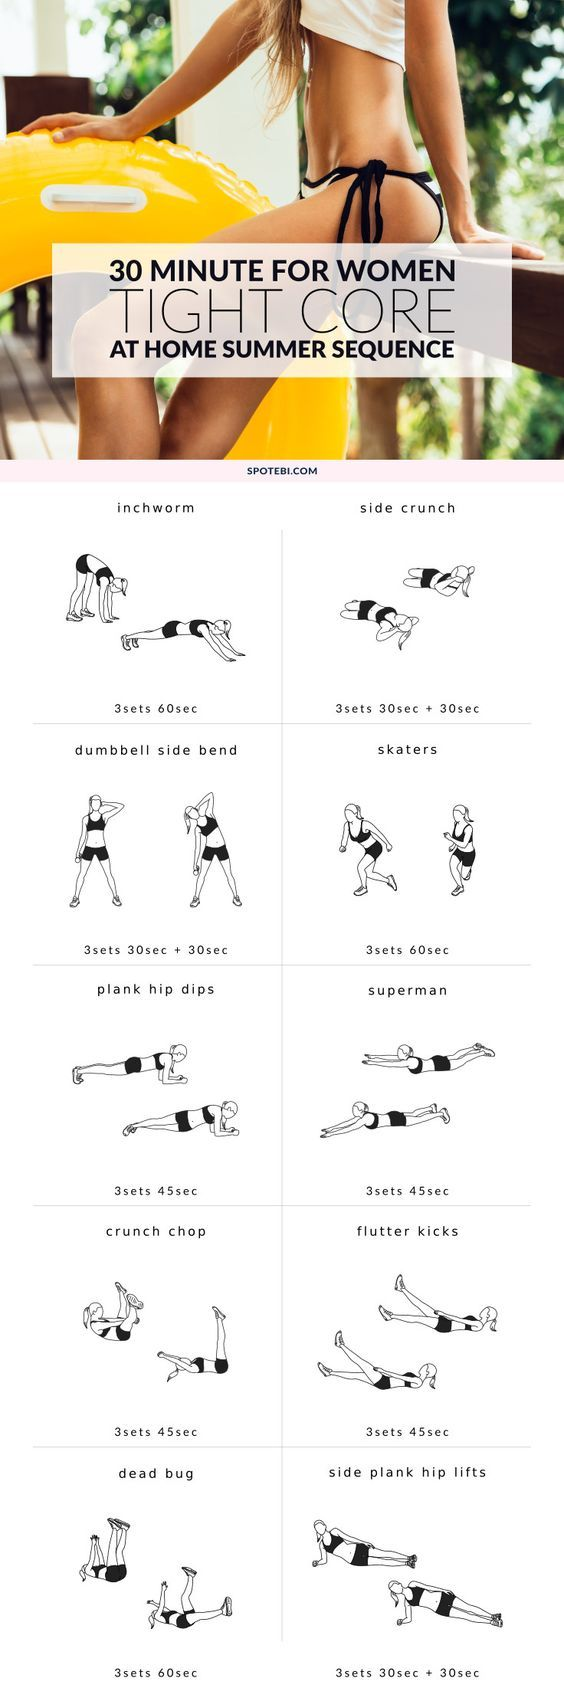 To get a toned belly and a small waist, women need to target all layers of muscles and hit the midsection from different angles. This Tight Core Summer Workout is designed to cinch your waist, strengthen your core and give you a tighter tummy! http://www.spotebi.com/workout-routines/30-minute-tight-core-summer-workout/